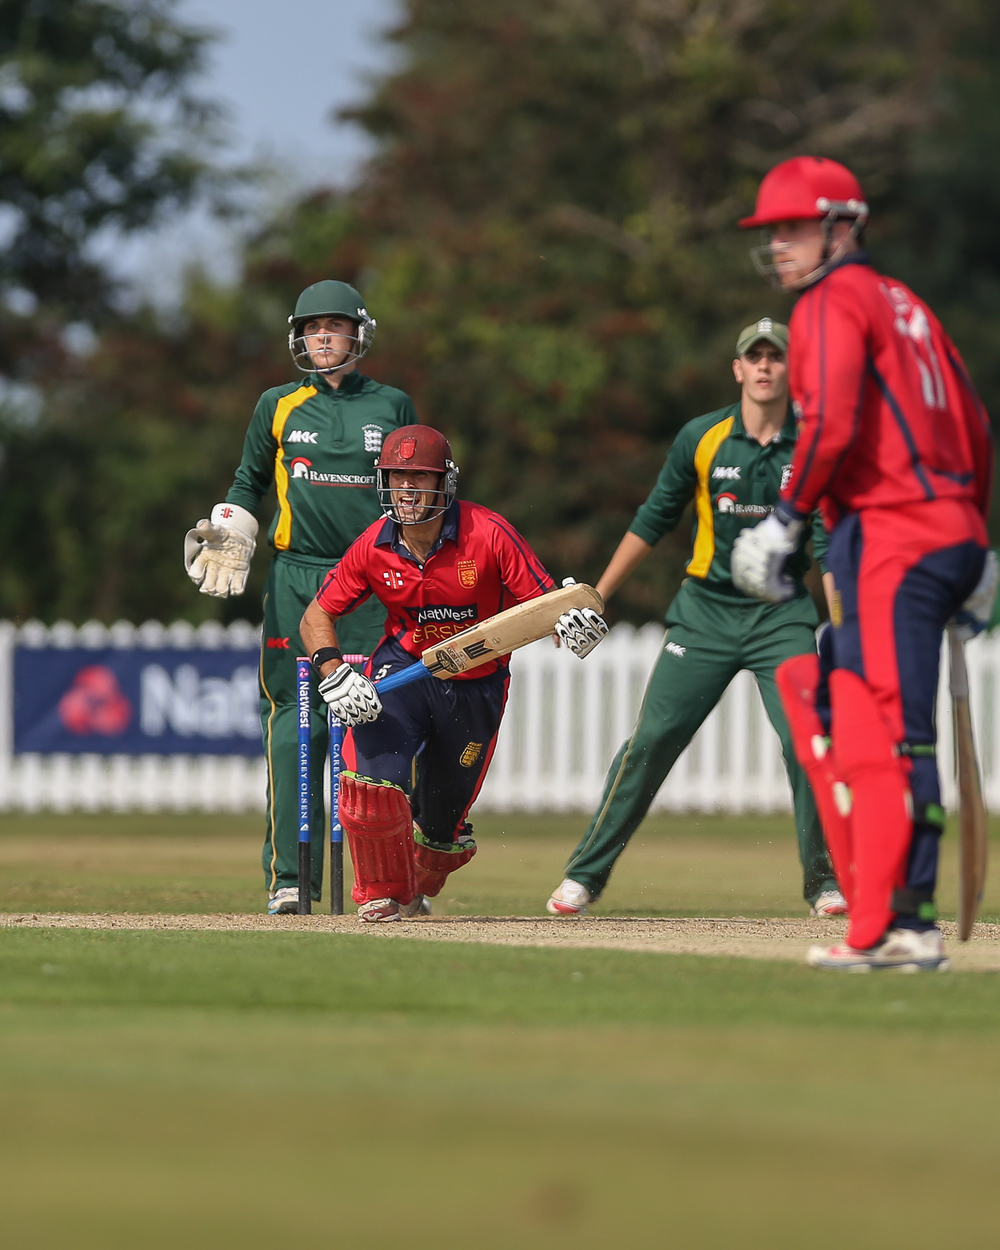 Jersey v Guernsey Inter-Insular 2014… Jersey win by 6 wkts at Jim Perchards beautiful 'Farmers Field' in Jersey...